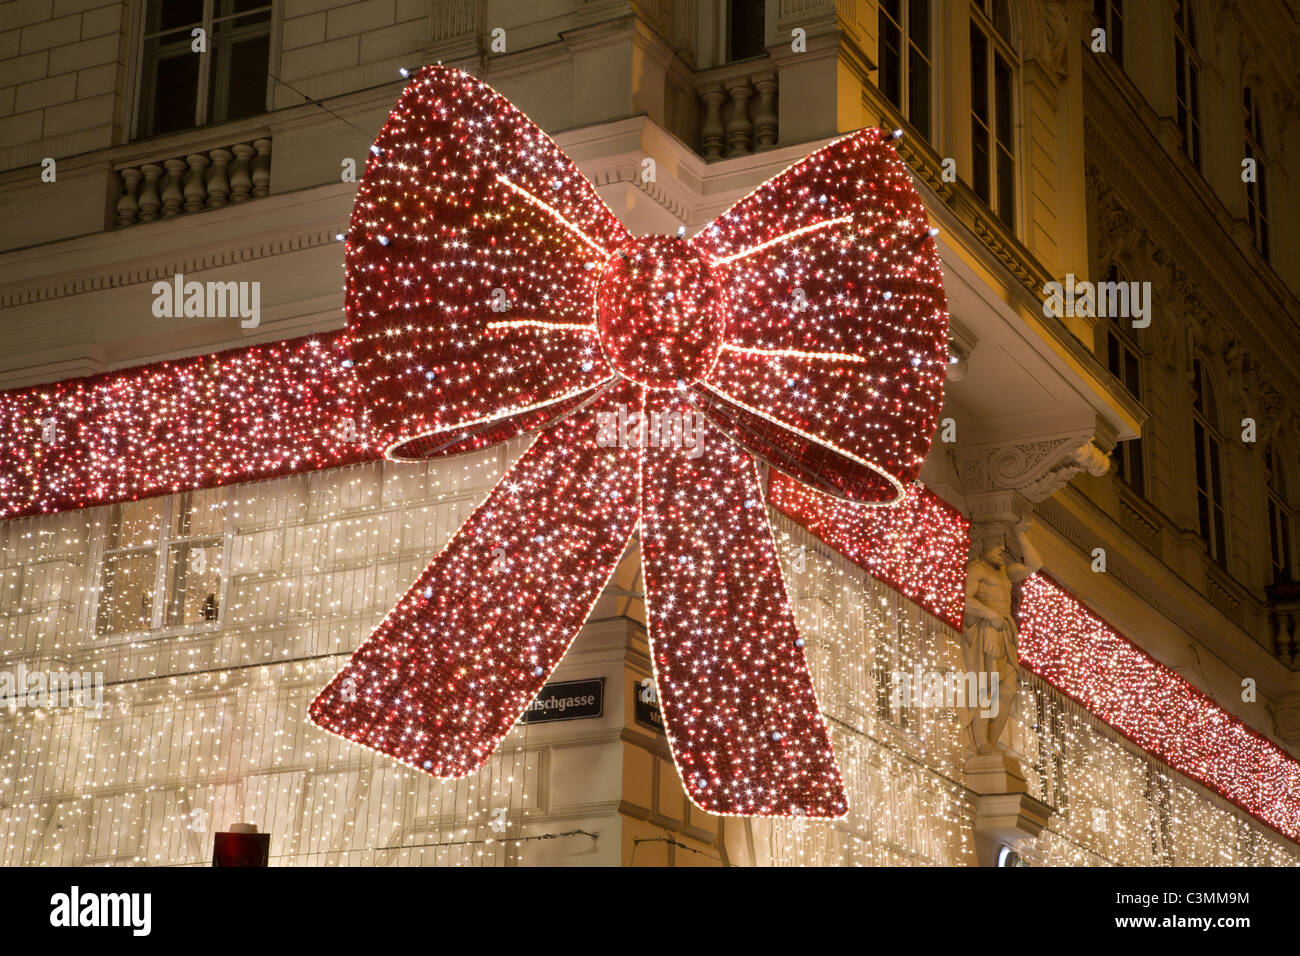 Christmas decoration from Vienna house facade - Stock Image